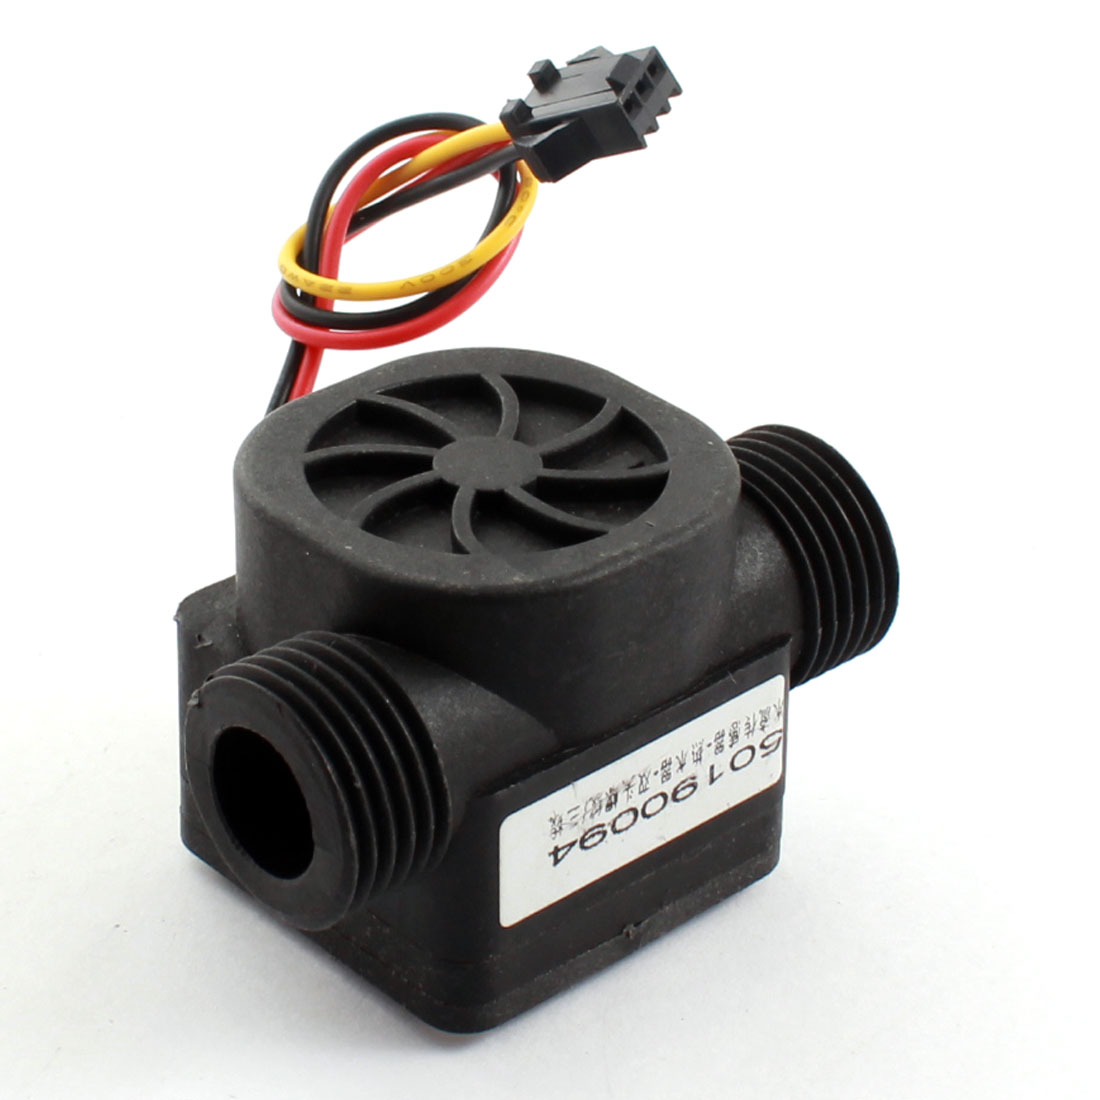 0-2MPa 20mm Thread 3P JST-SM Black Plastic Water Flow Control Hall Sensor Control Switch DC5-12V